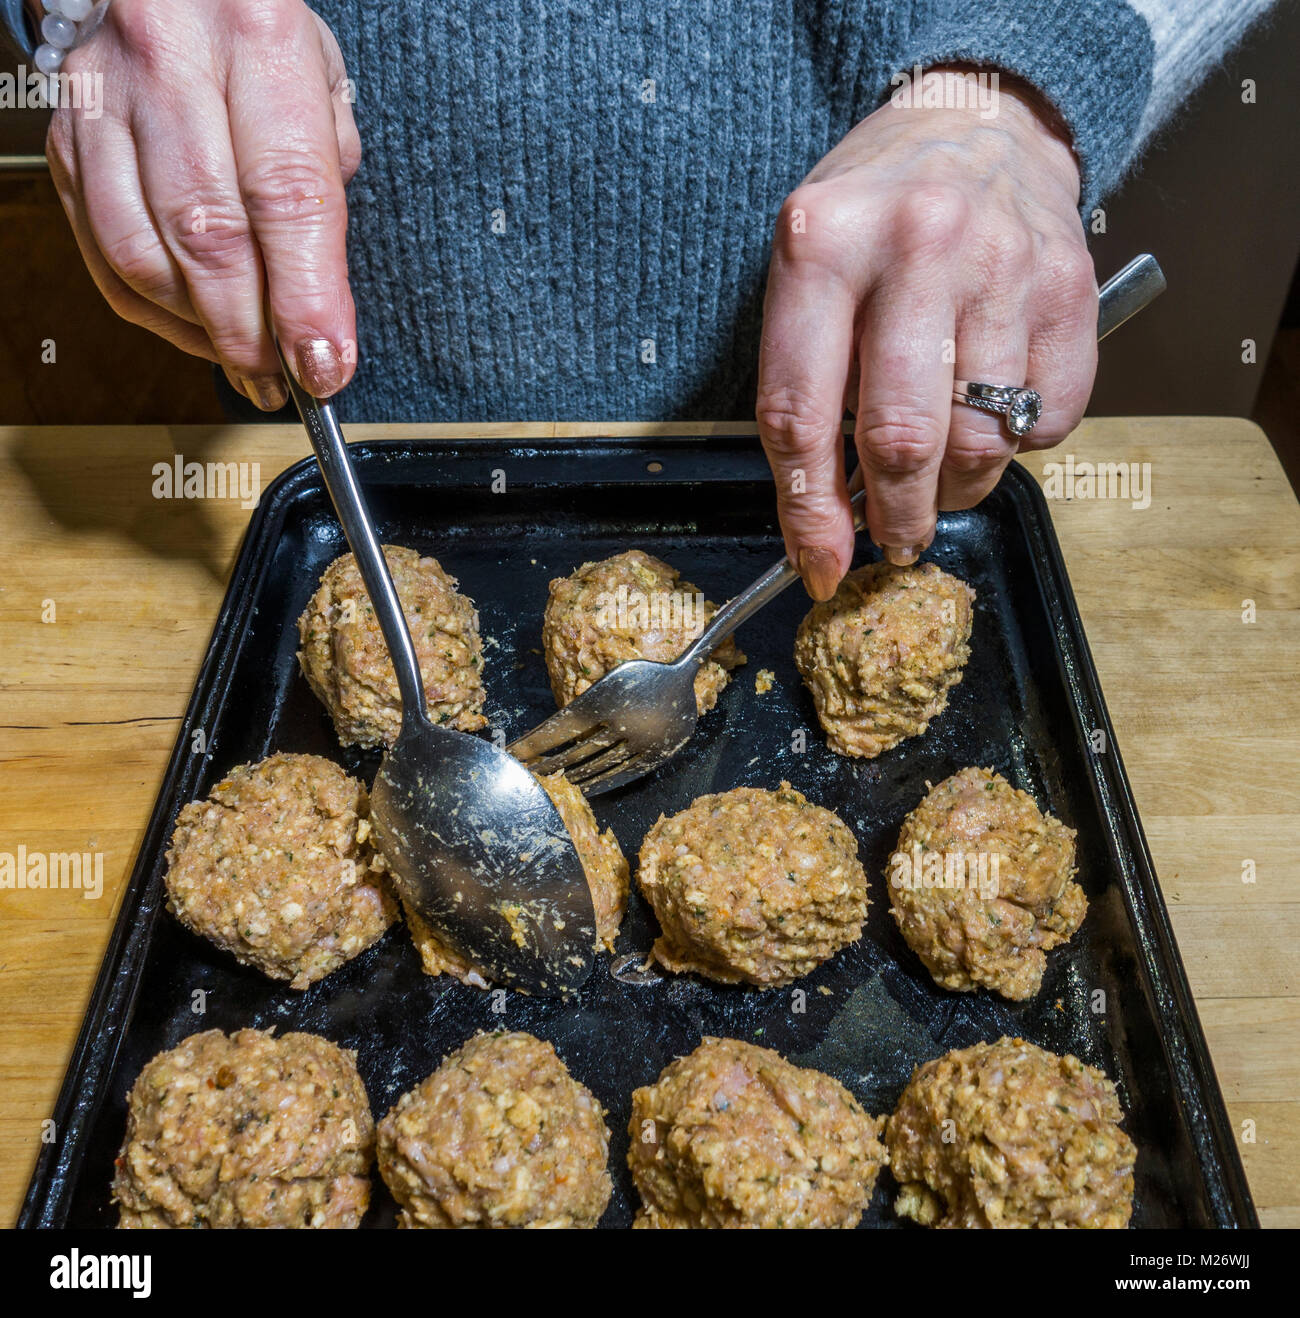 Woman's hands using a fork and spoon to arrange uncooked sausagemeat stuffing balls, in rows on a baking tray, ready - Stock Image